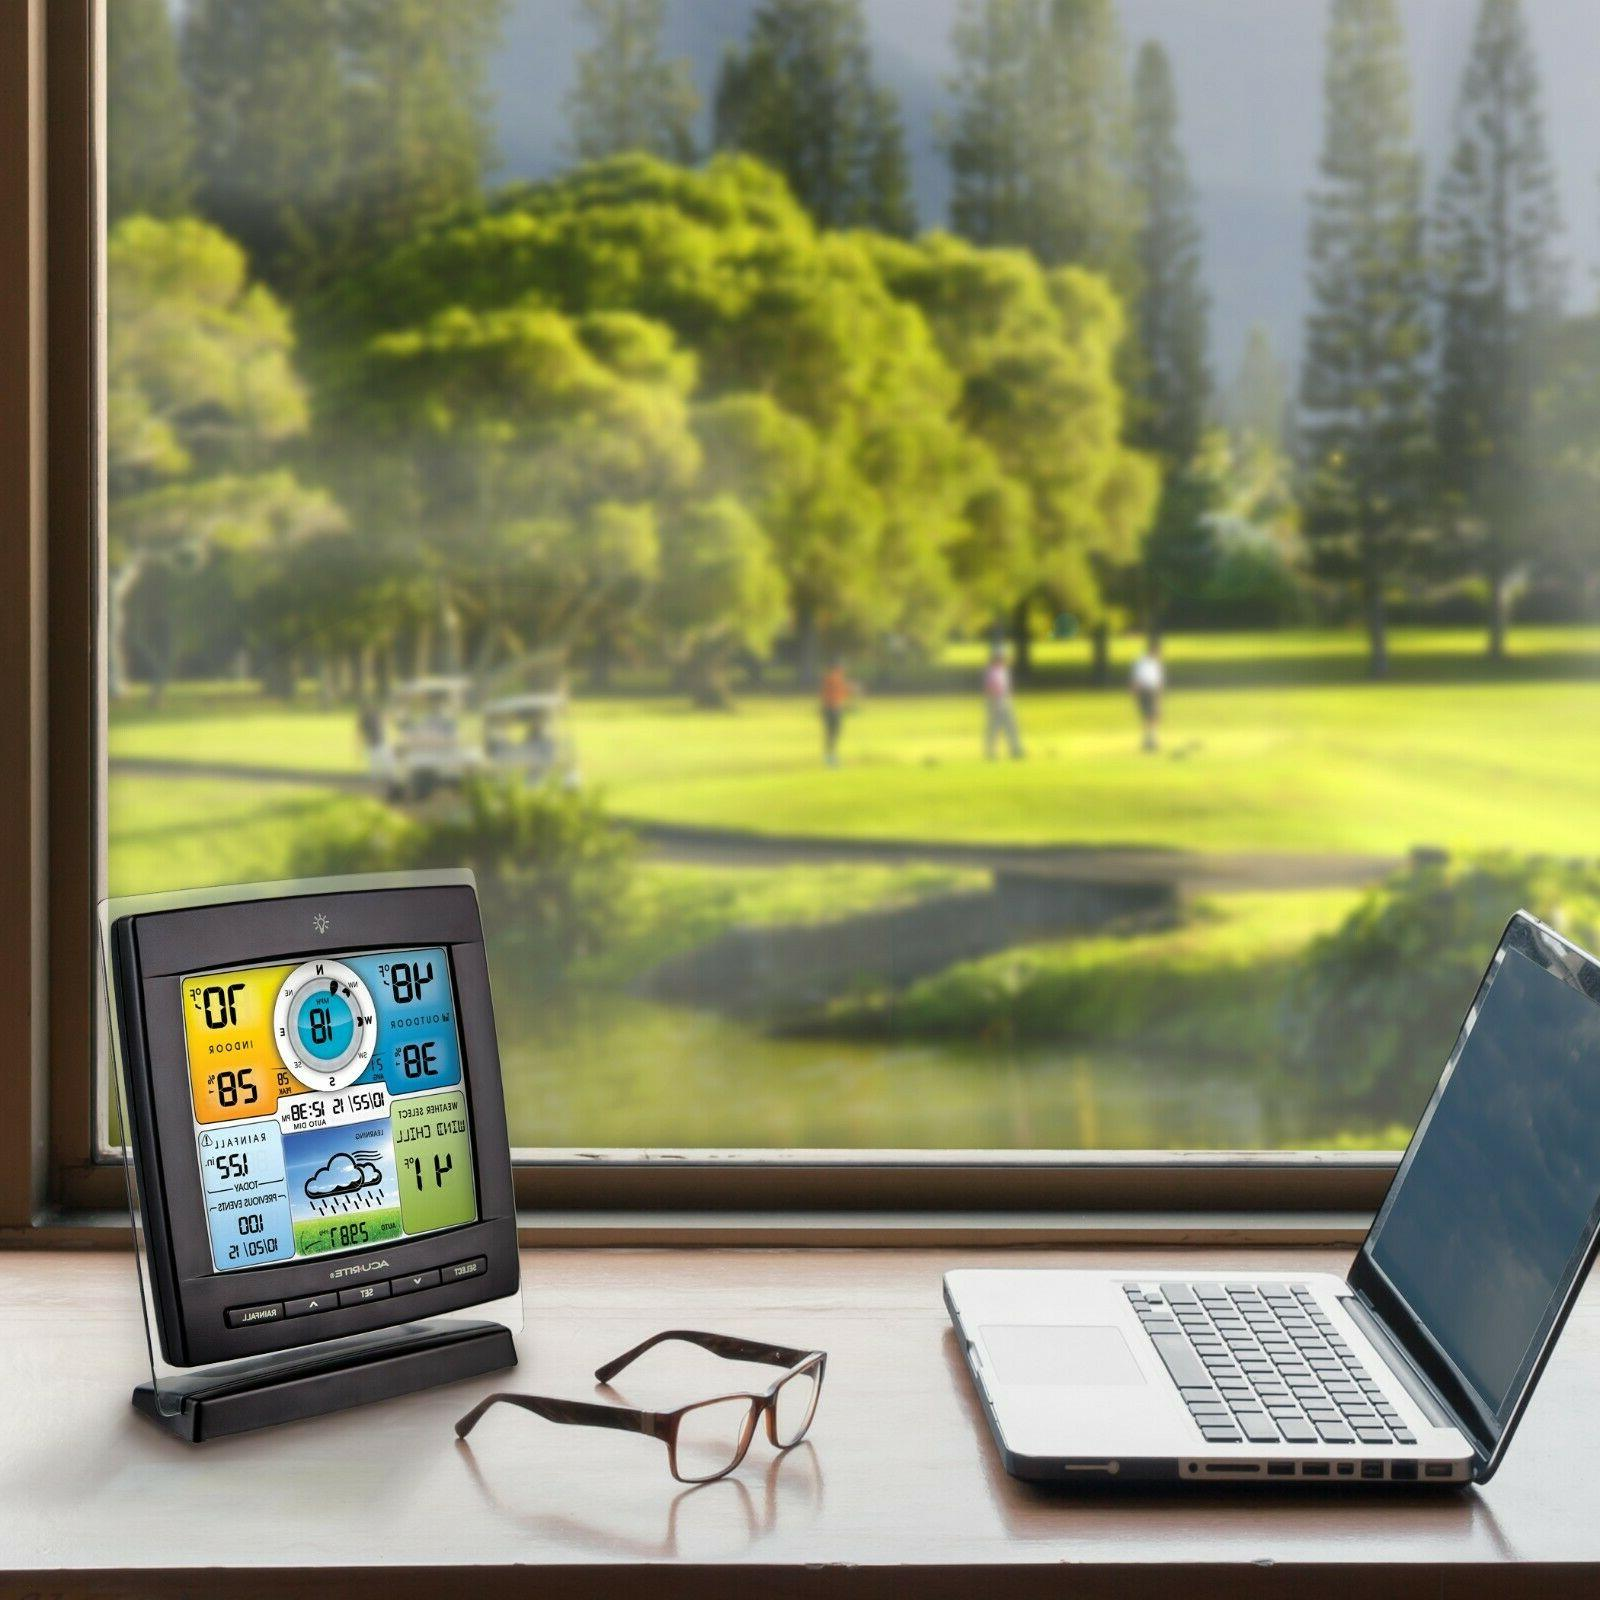 5-in-1 Wireless Weather Station Display